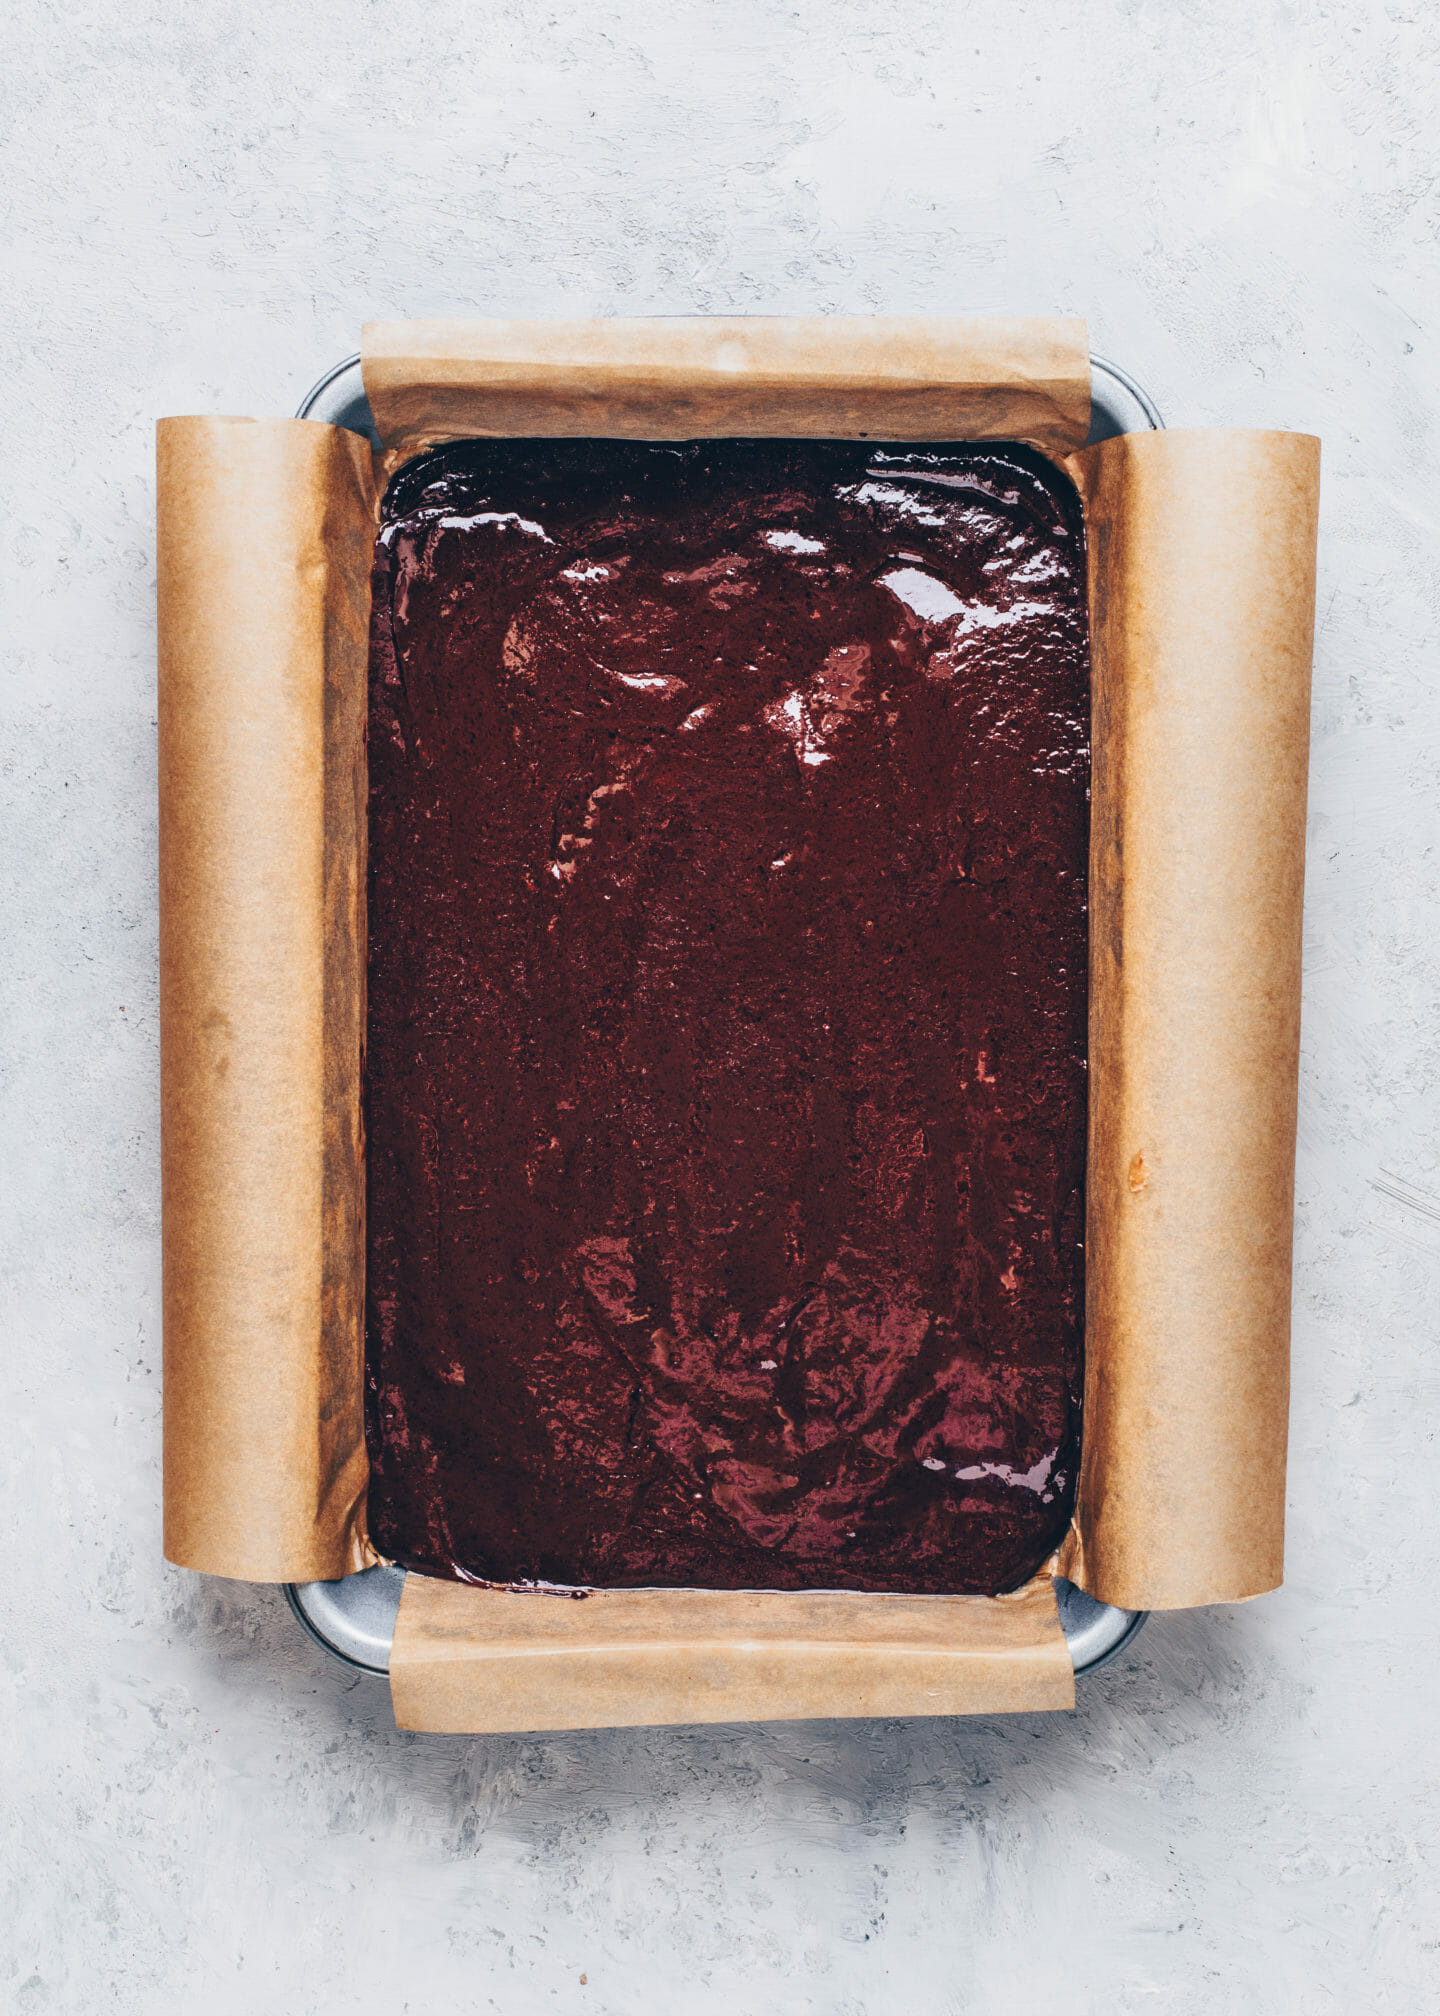 Brownie batter in a baking pan